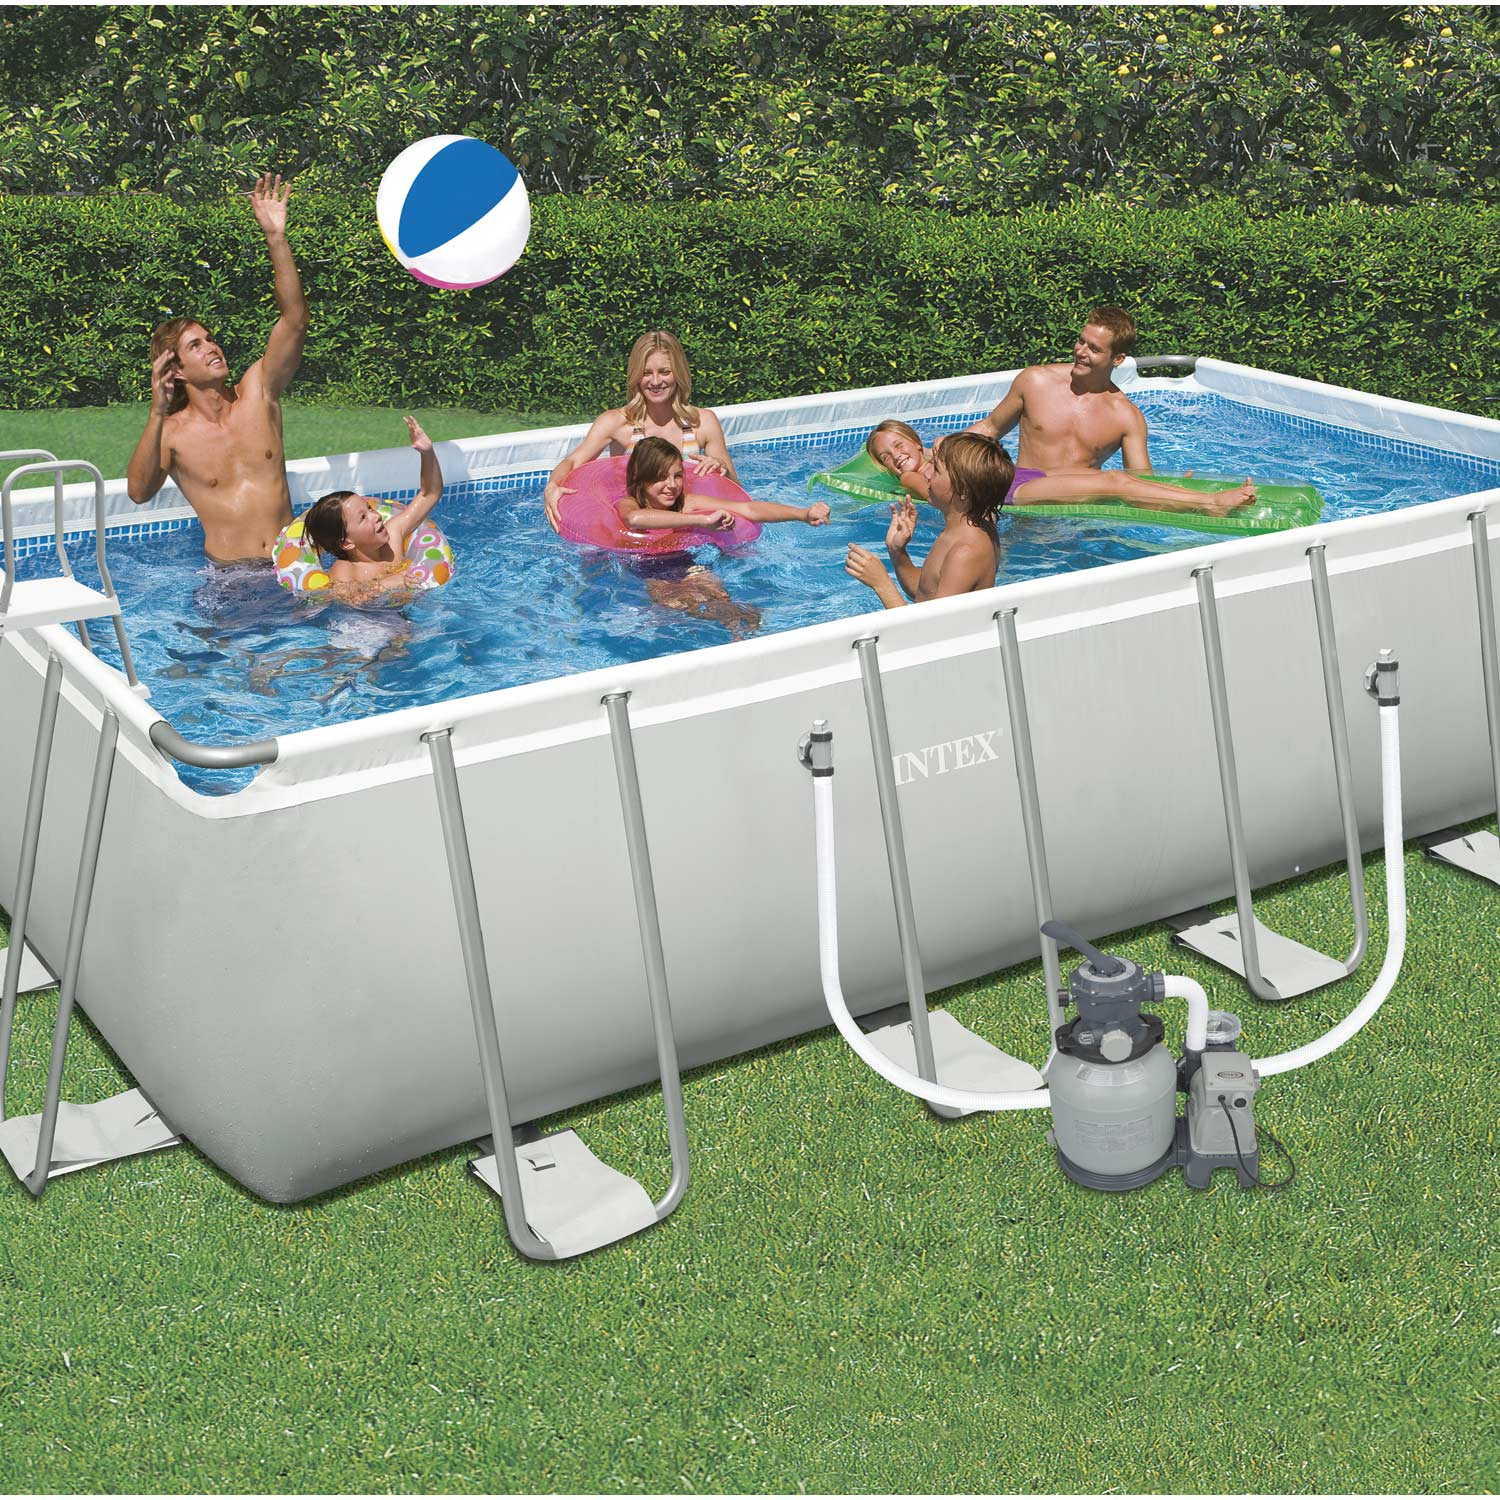 Piscine hors sol autoportante tubulaire ultra silver intex for Piscine intex silver ultra